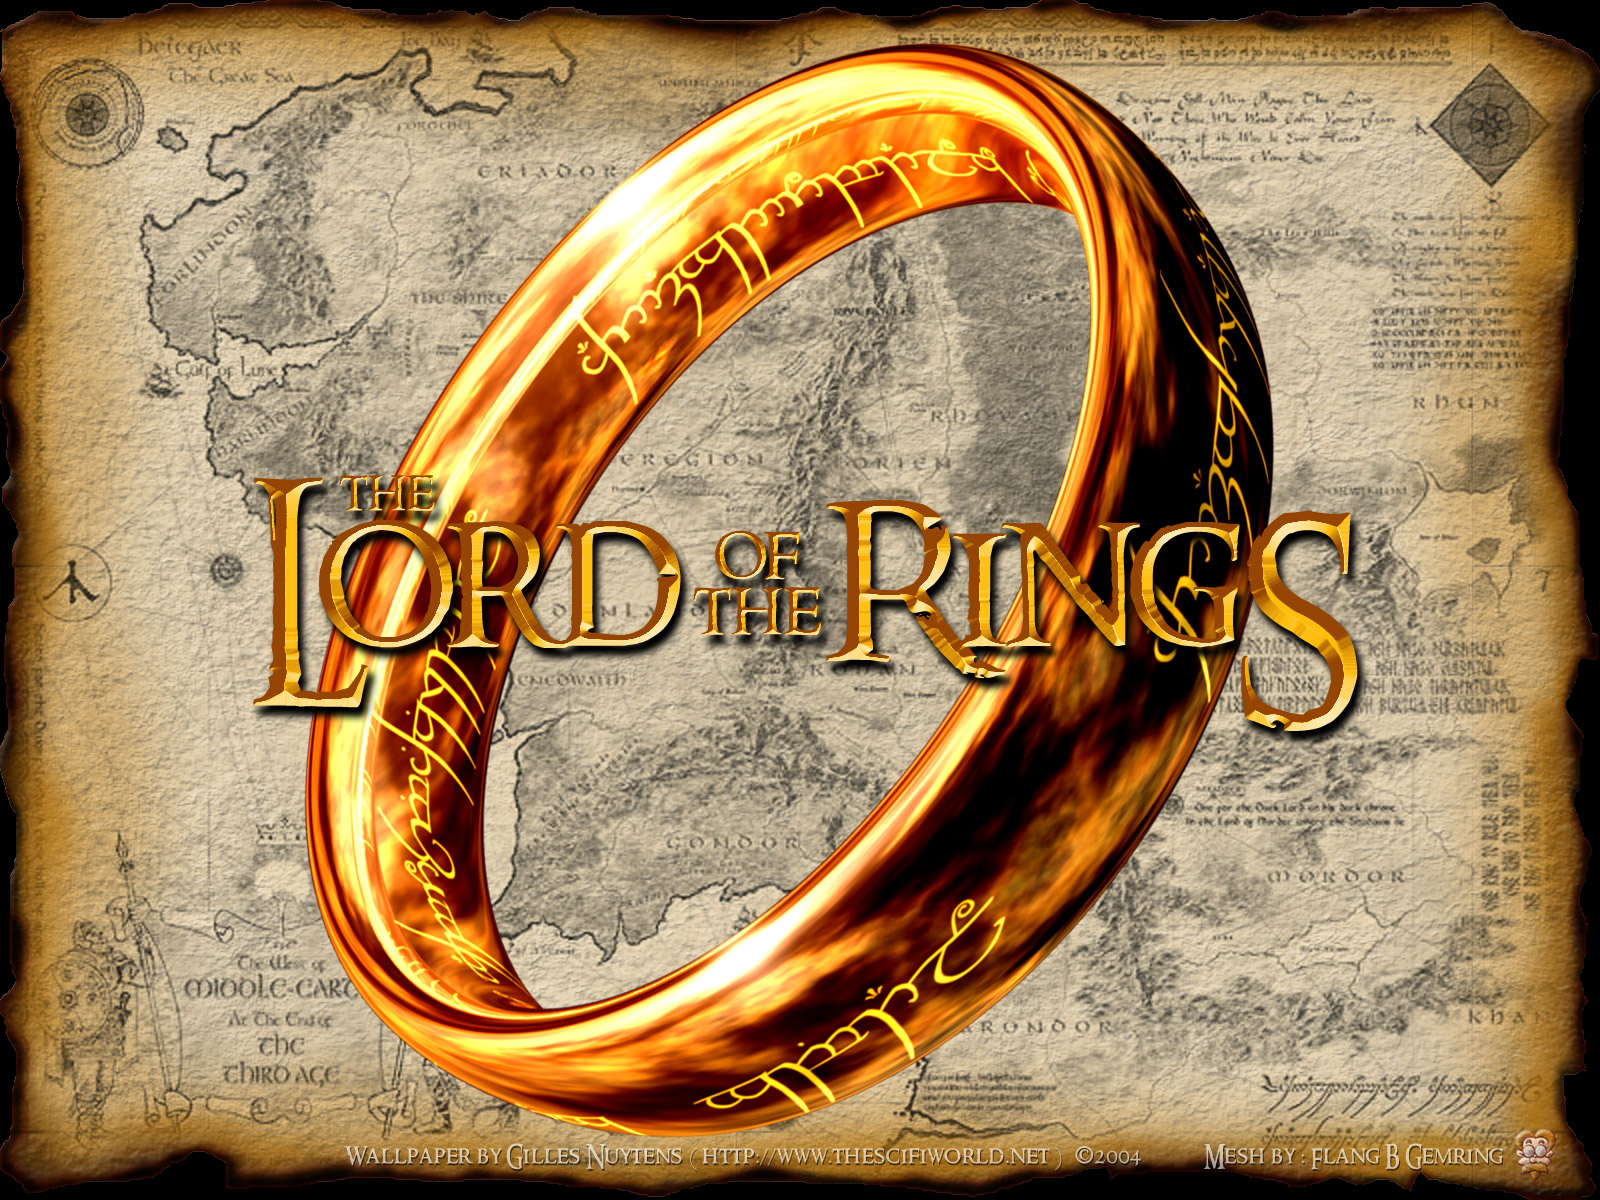 Lord of the rings Wallpapers and Backgrounds 1600x1200